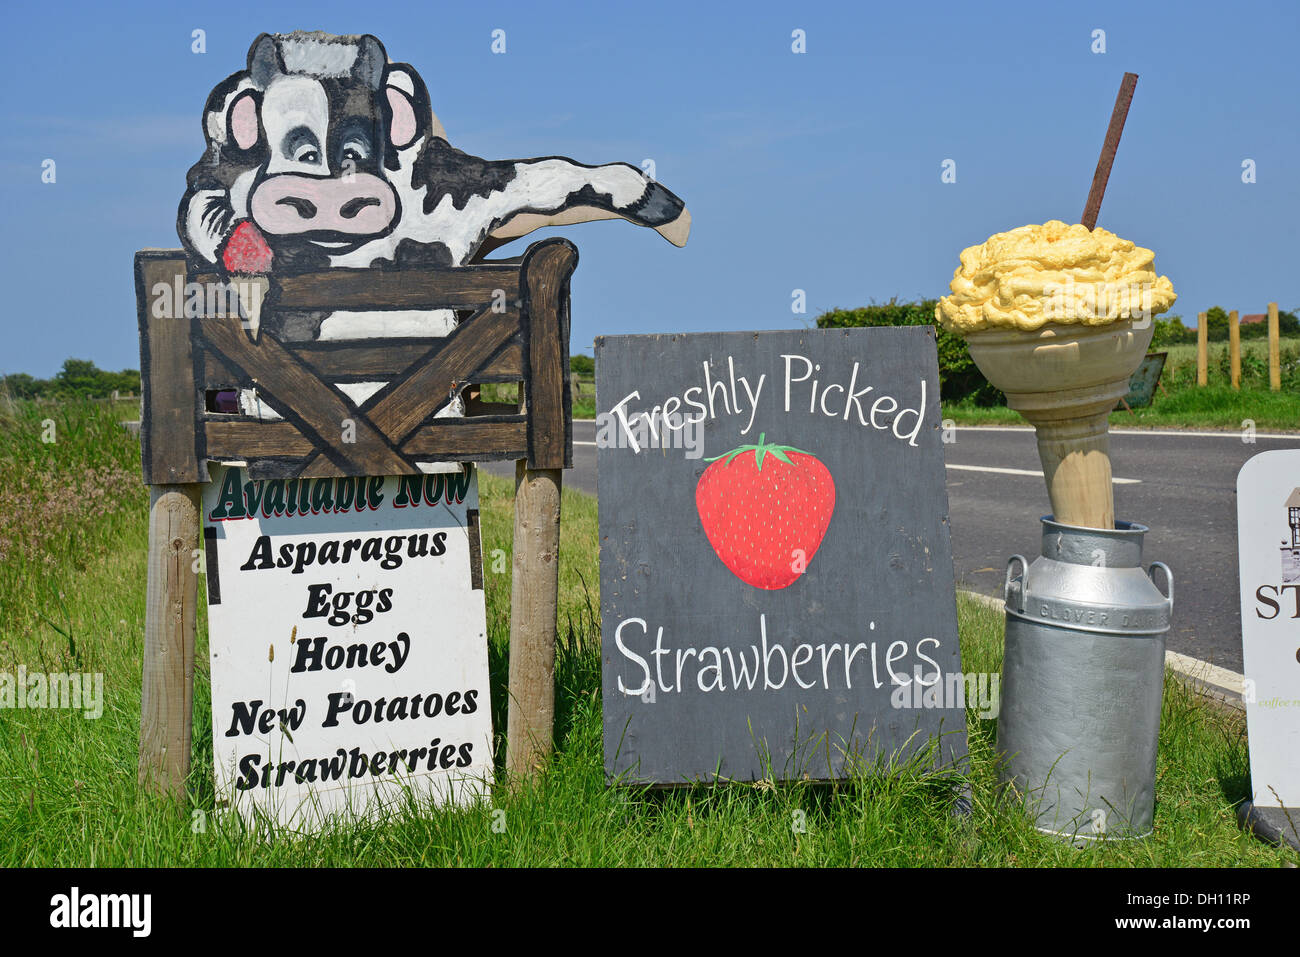 Freshly picked strawberries sign on roadside, Sutton-on-Sea, Lincolnshire, England, United Kingdom - Stock Image